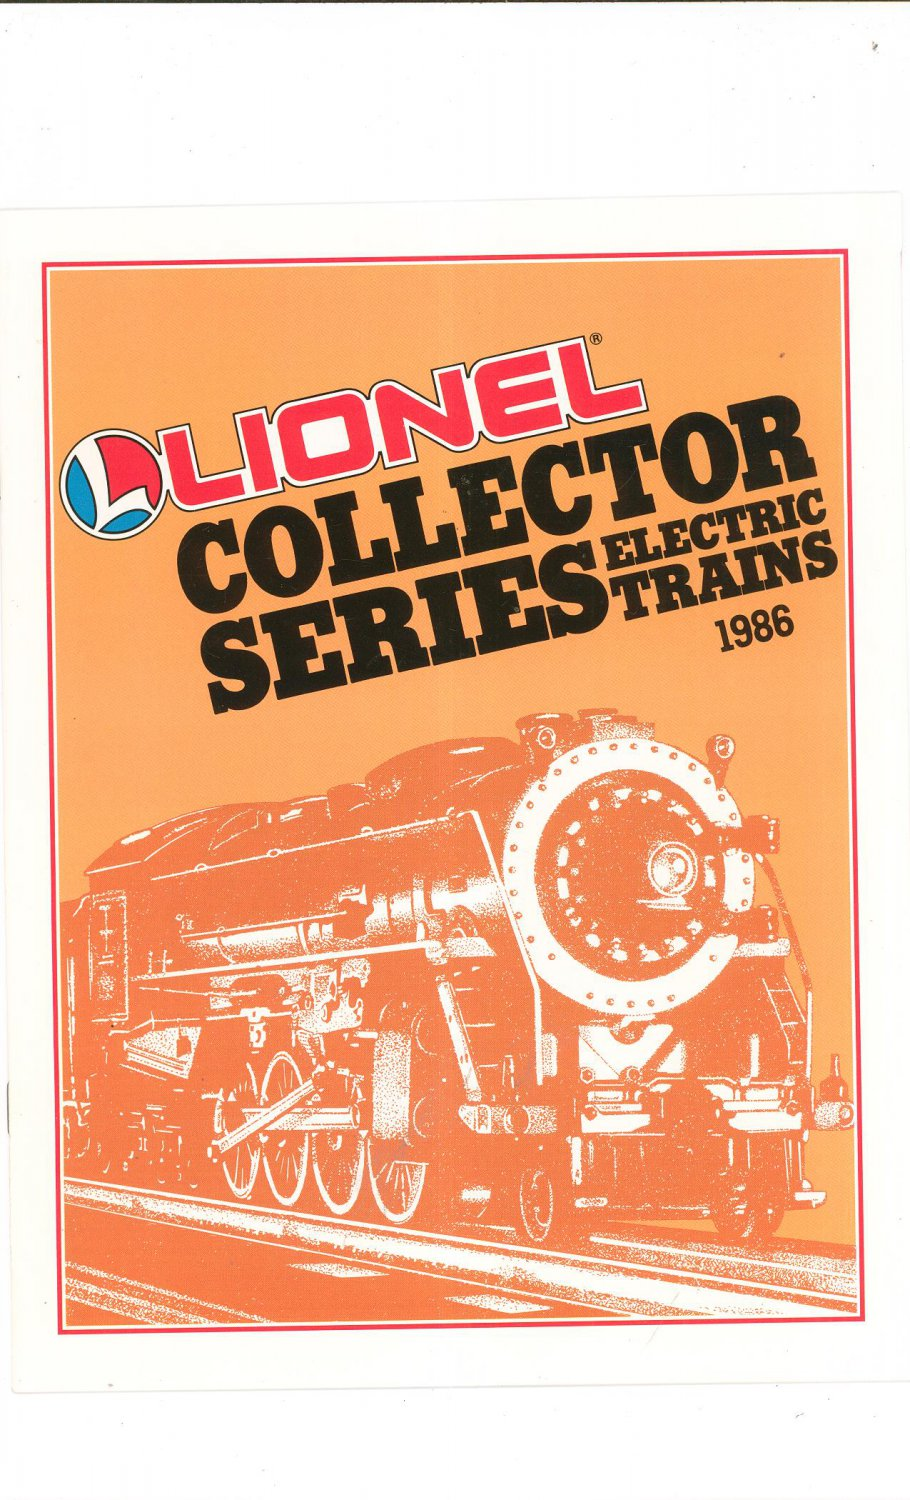 Vintage Lionel Collector Series Electric Trains Catalog 1986 Not PDF Free Shipping Offer